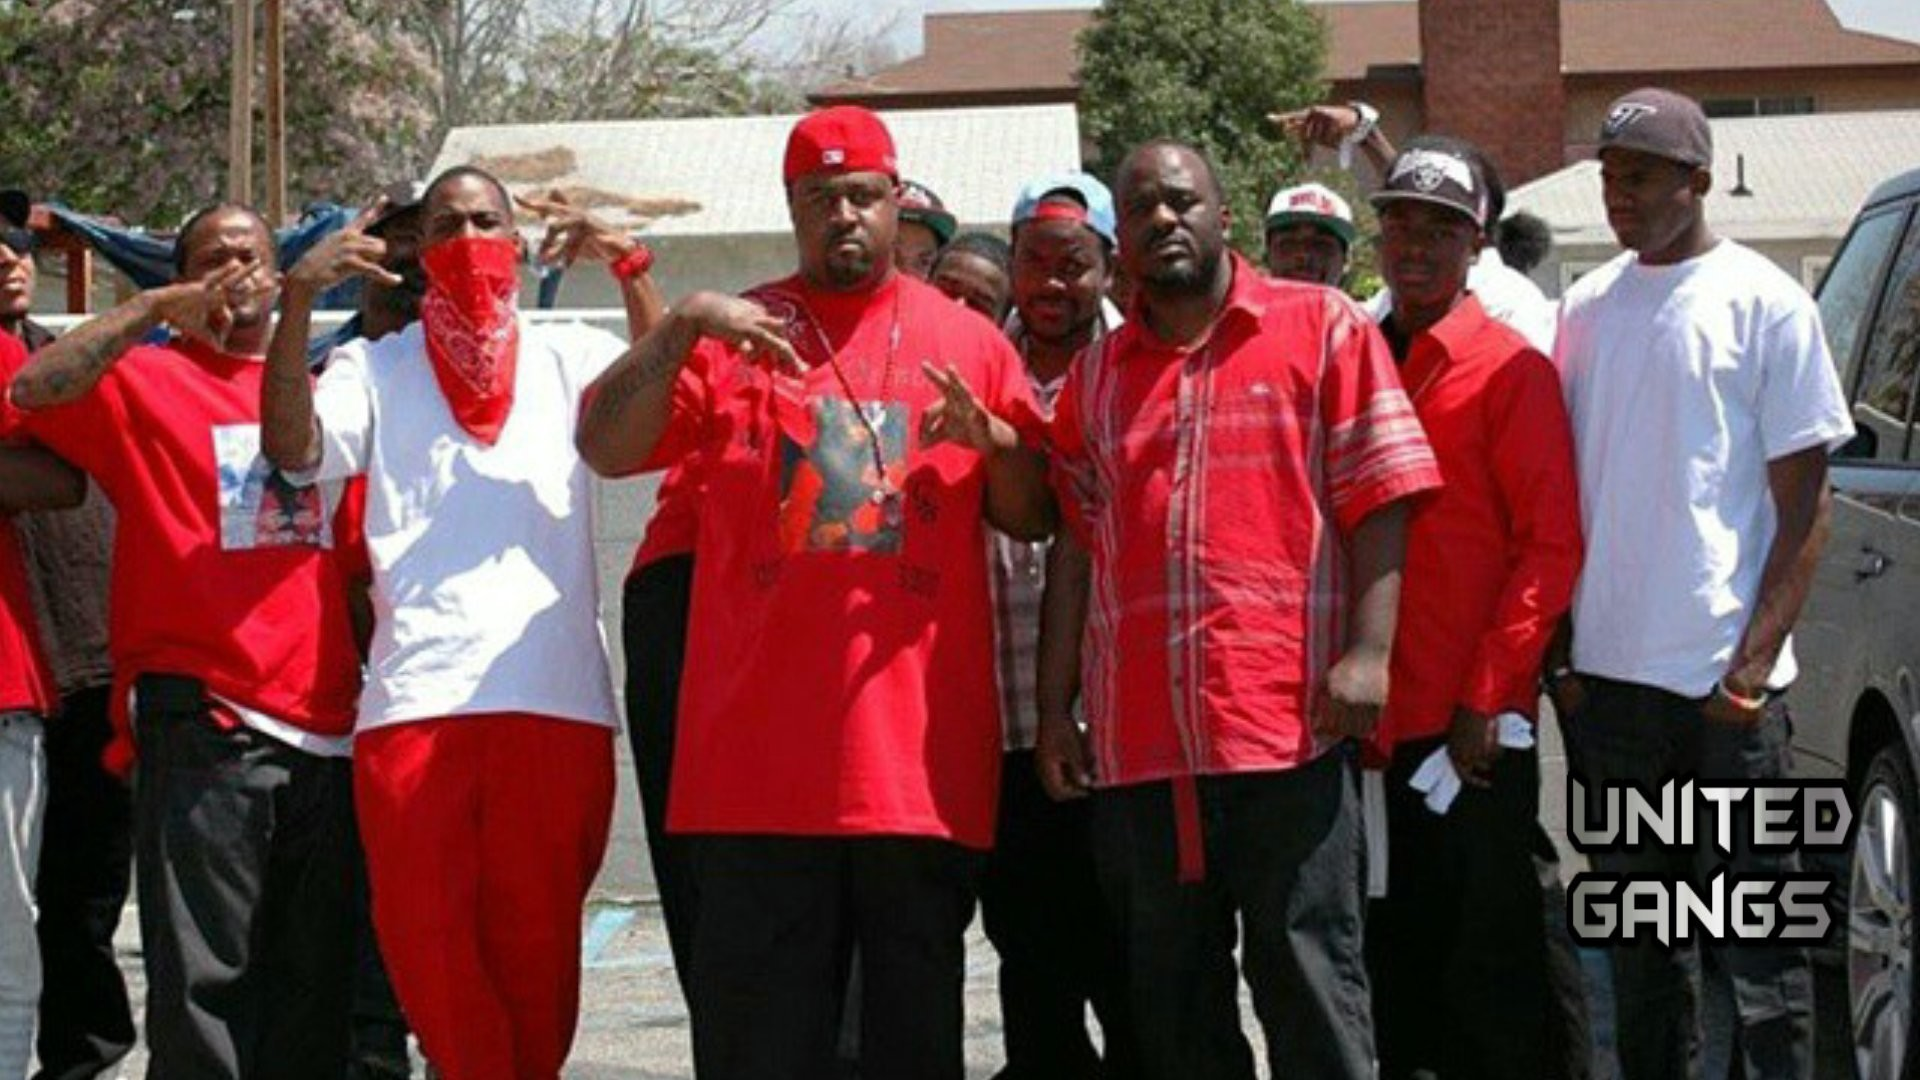 1920x1080 Delman Heights Bloods